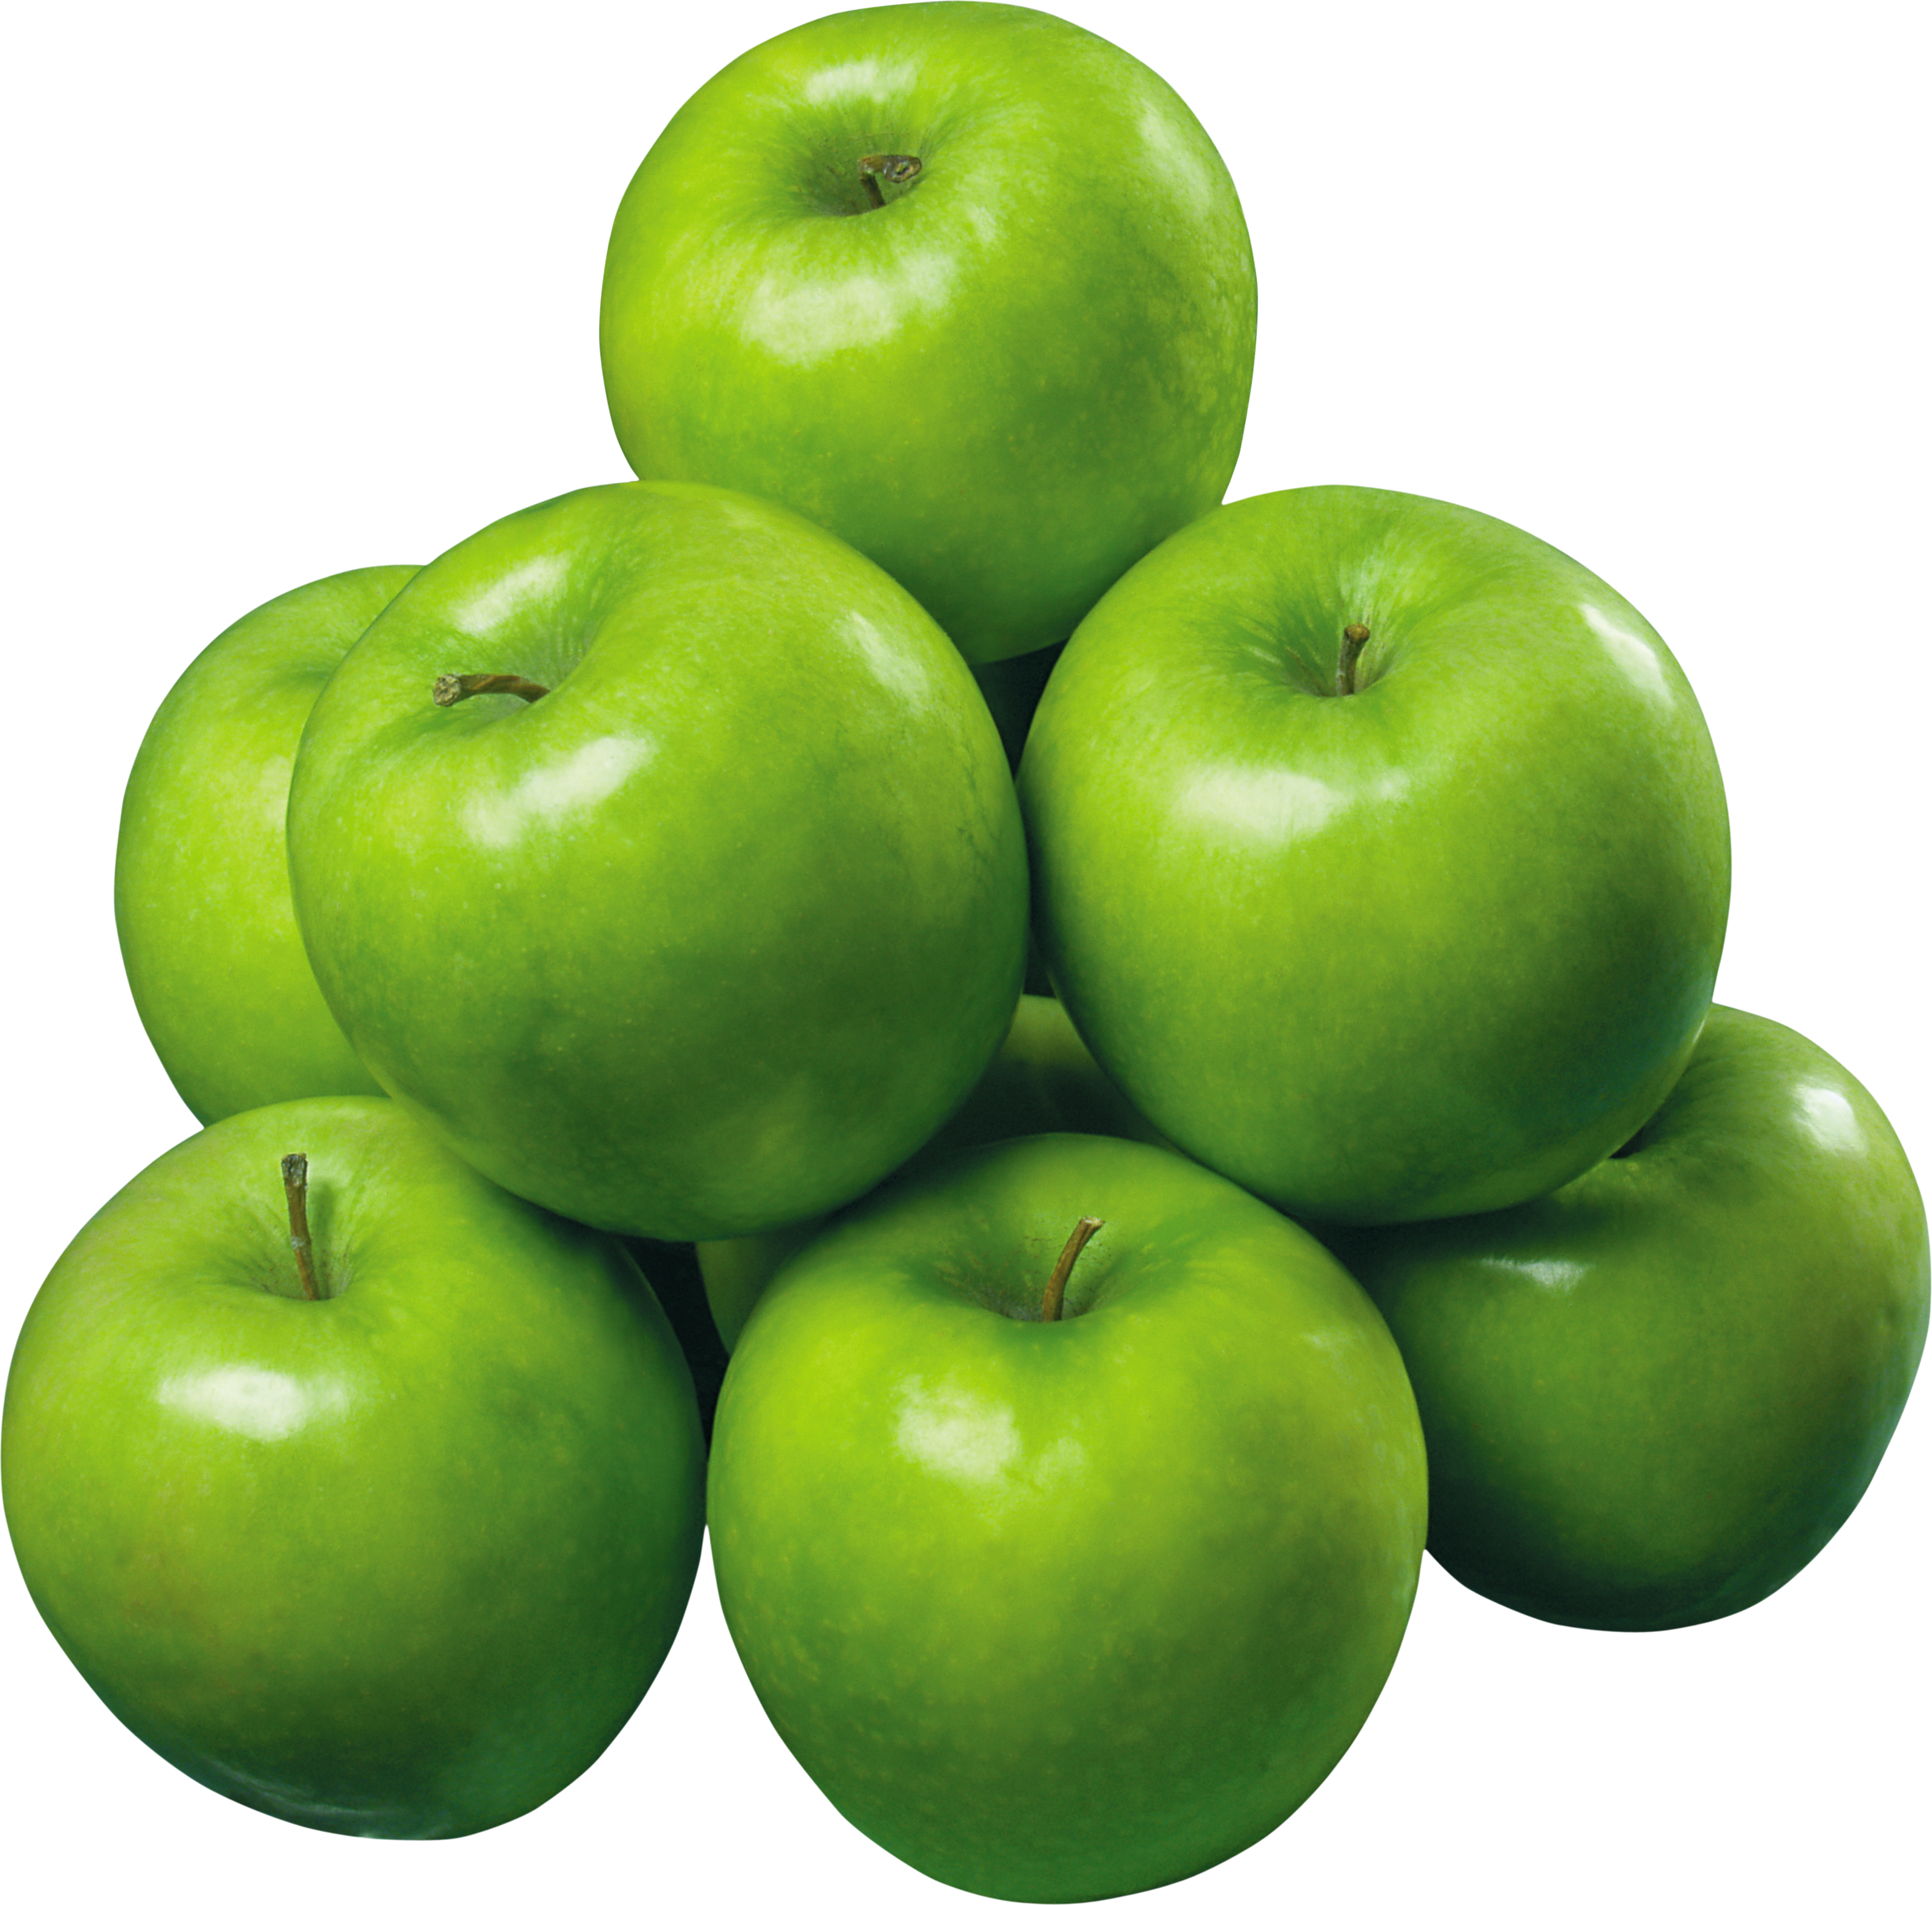 Now you can download Apple PNG